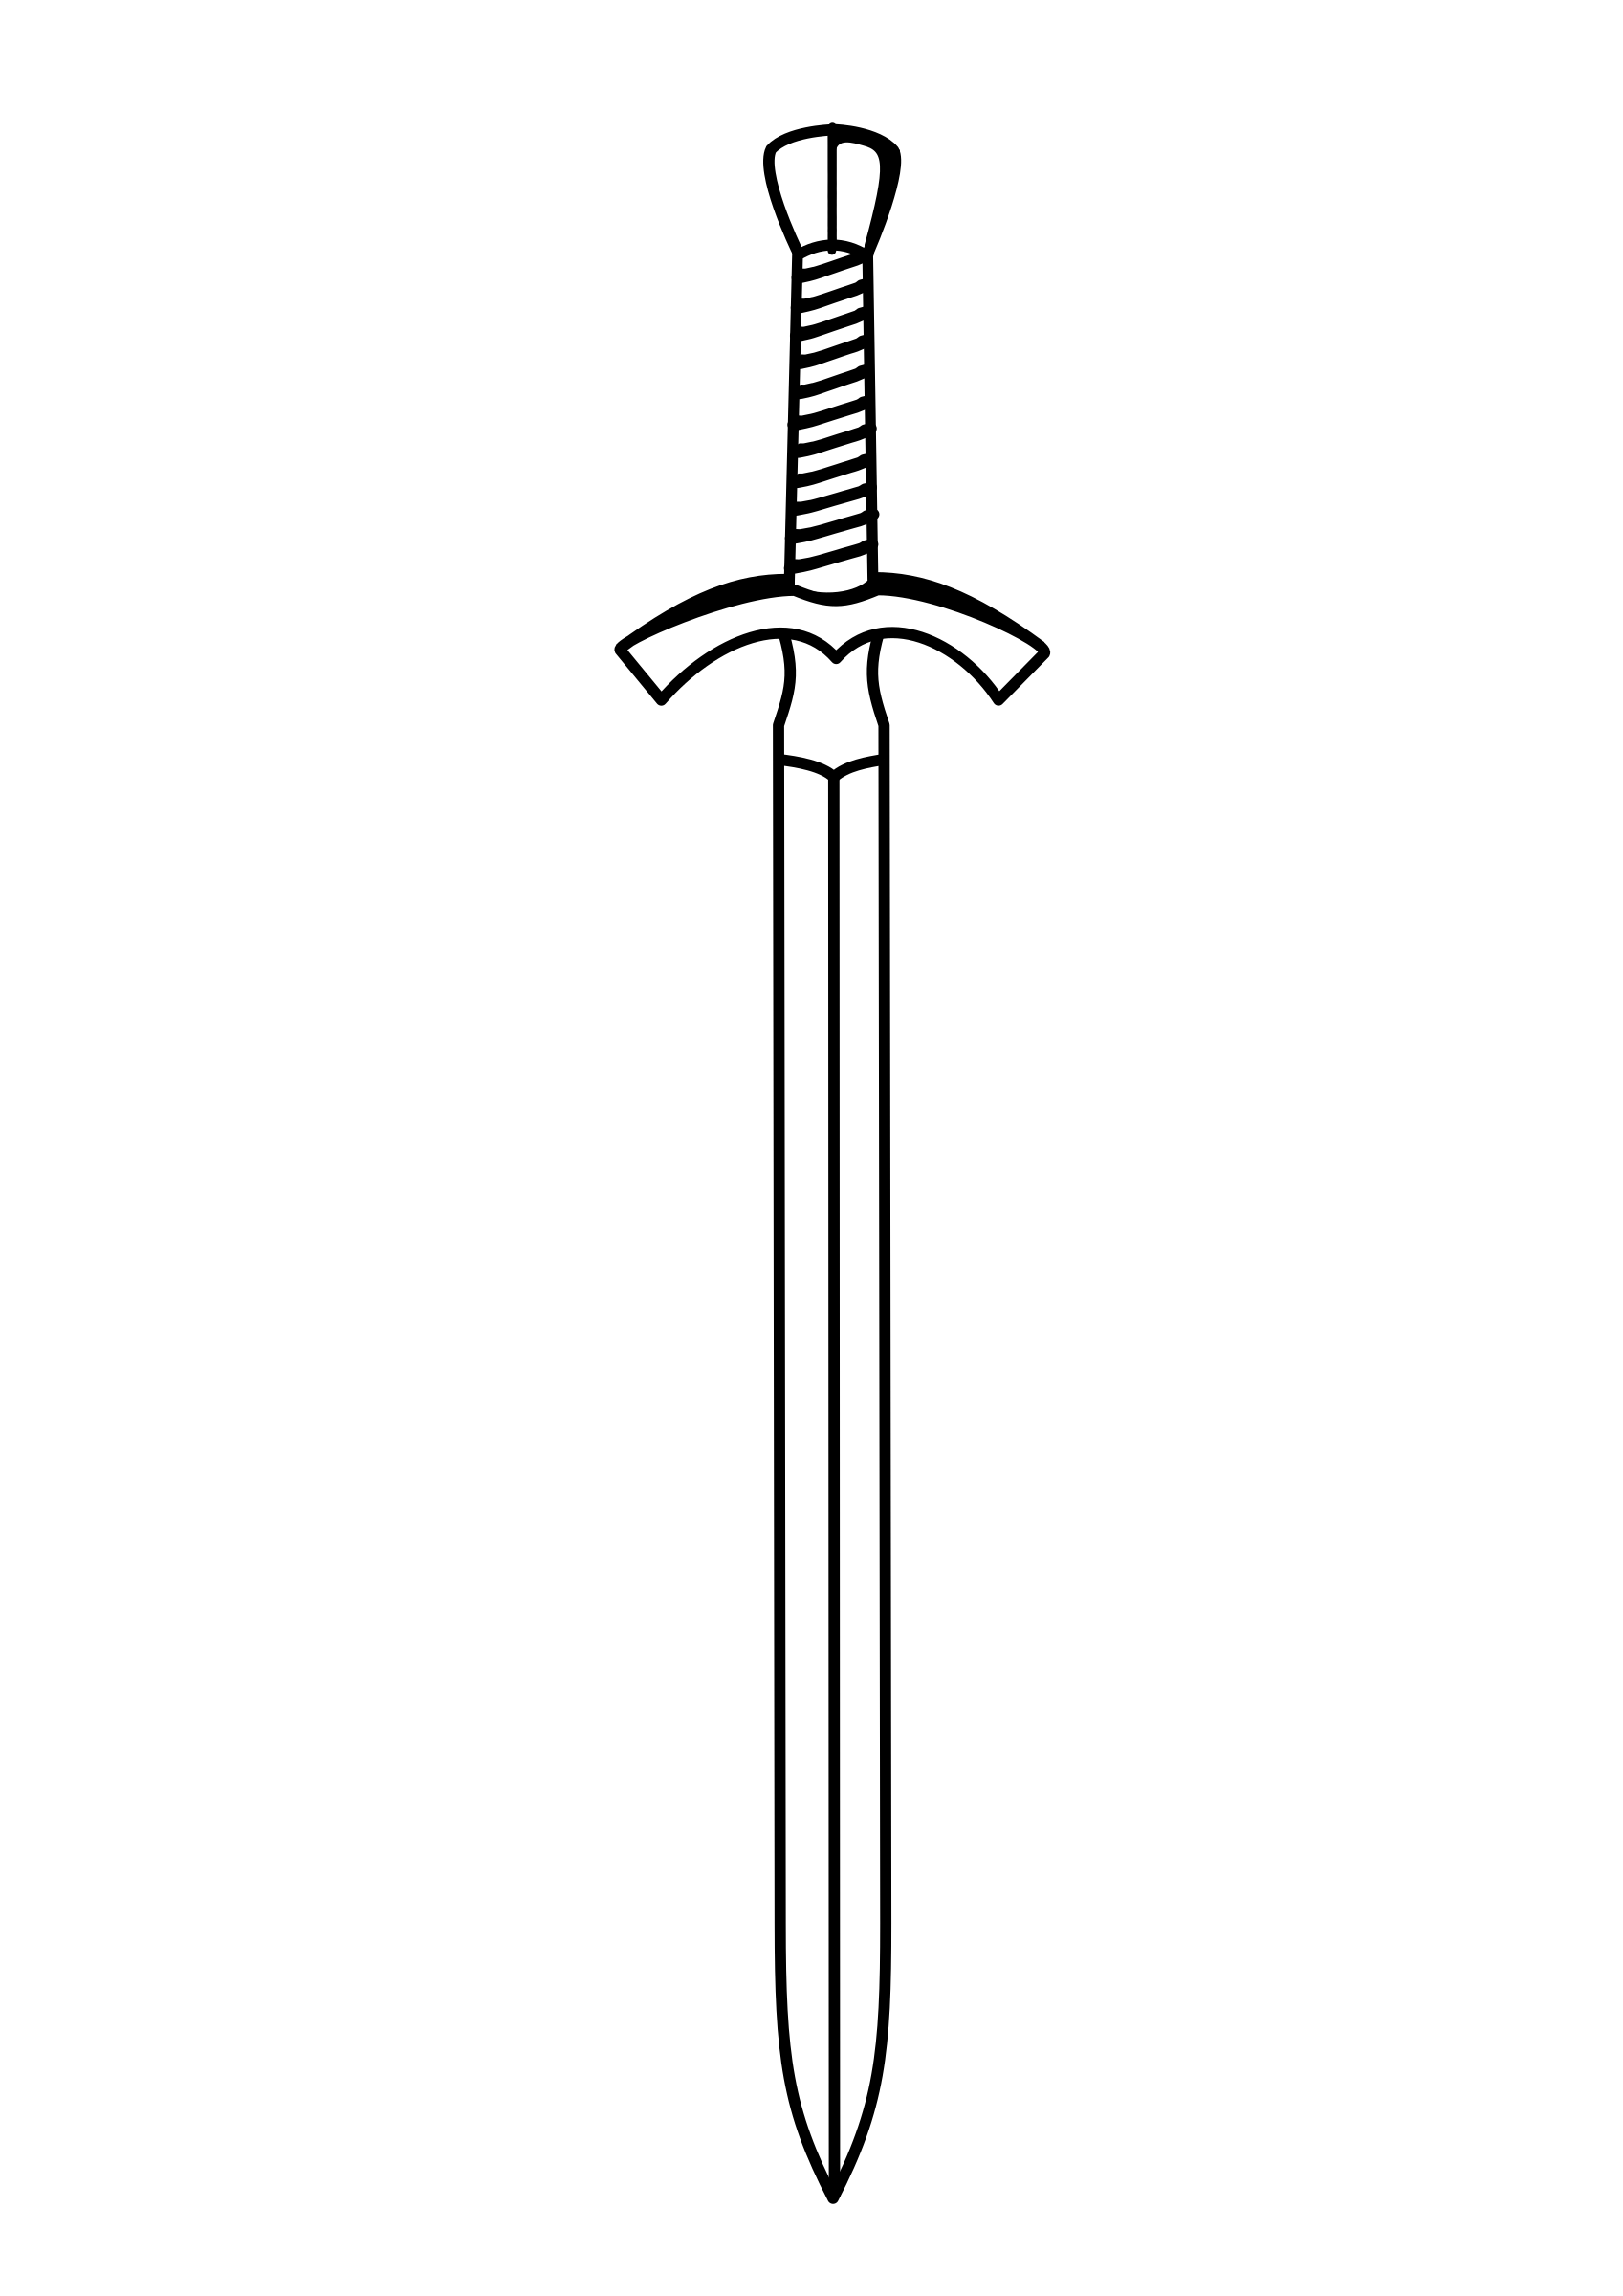 BIG IMAGE (PNG) - Sword PNG Black And White